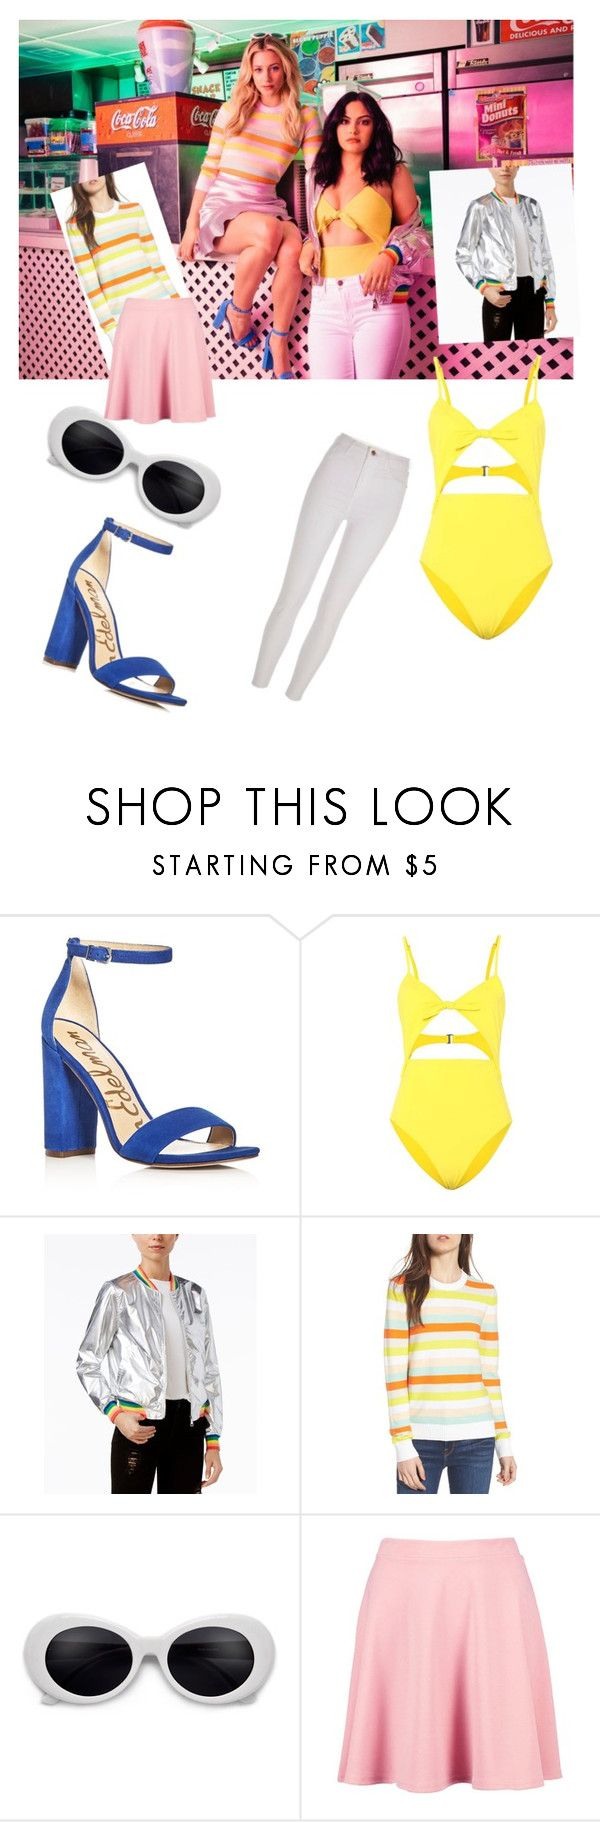 """""""Riverdale"""" by maiajordan ❤ liked on Polyvore featuring Sam Edelman, Mara Hoffman, ban.do, Rebecca Minkoff, Boohoo and River Island"""